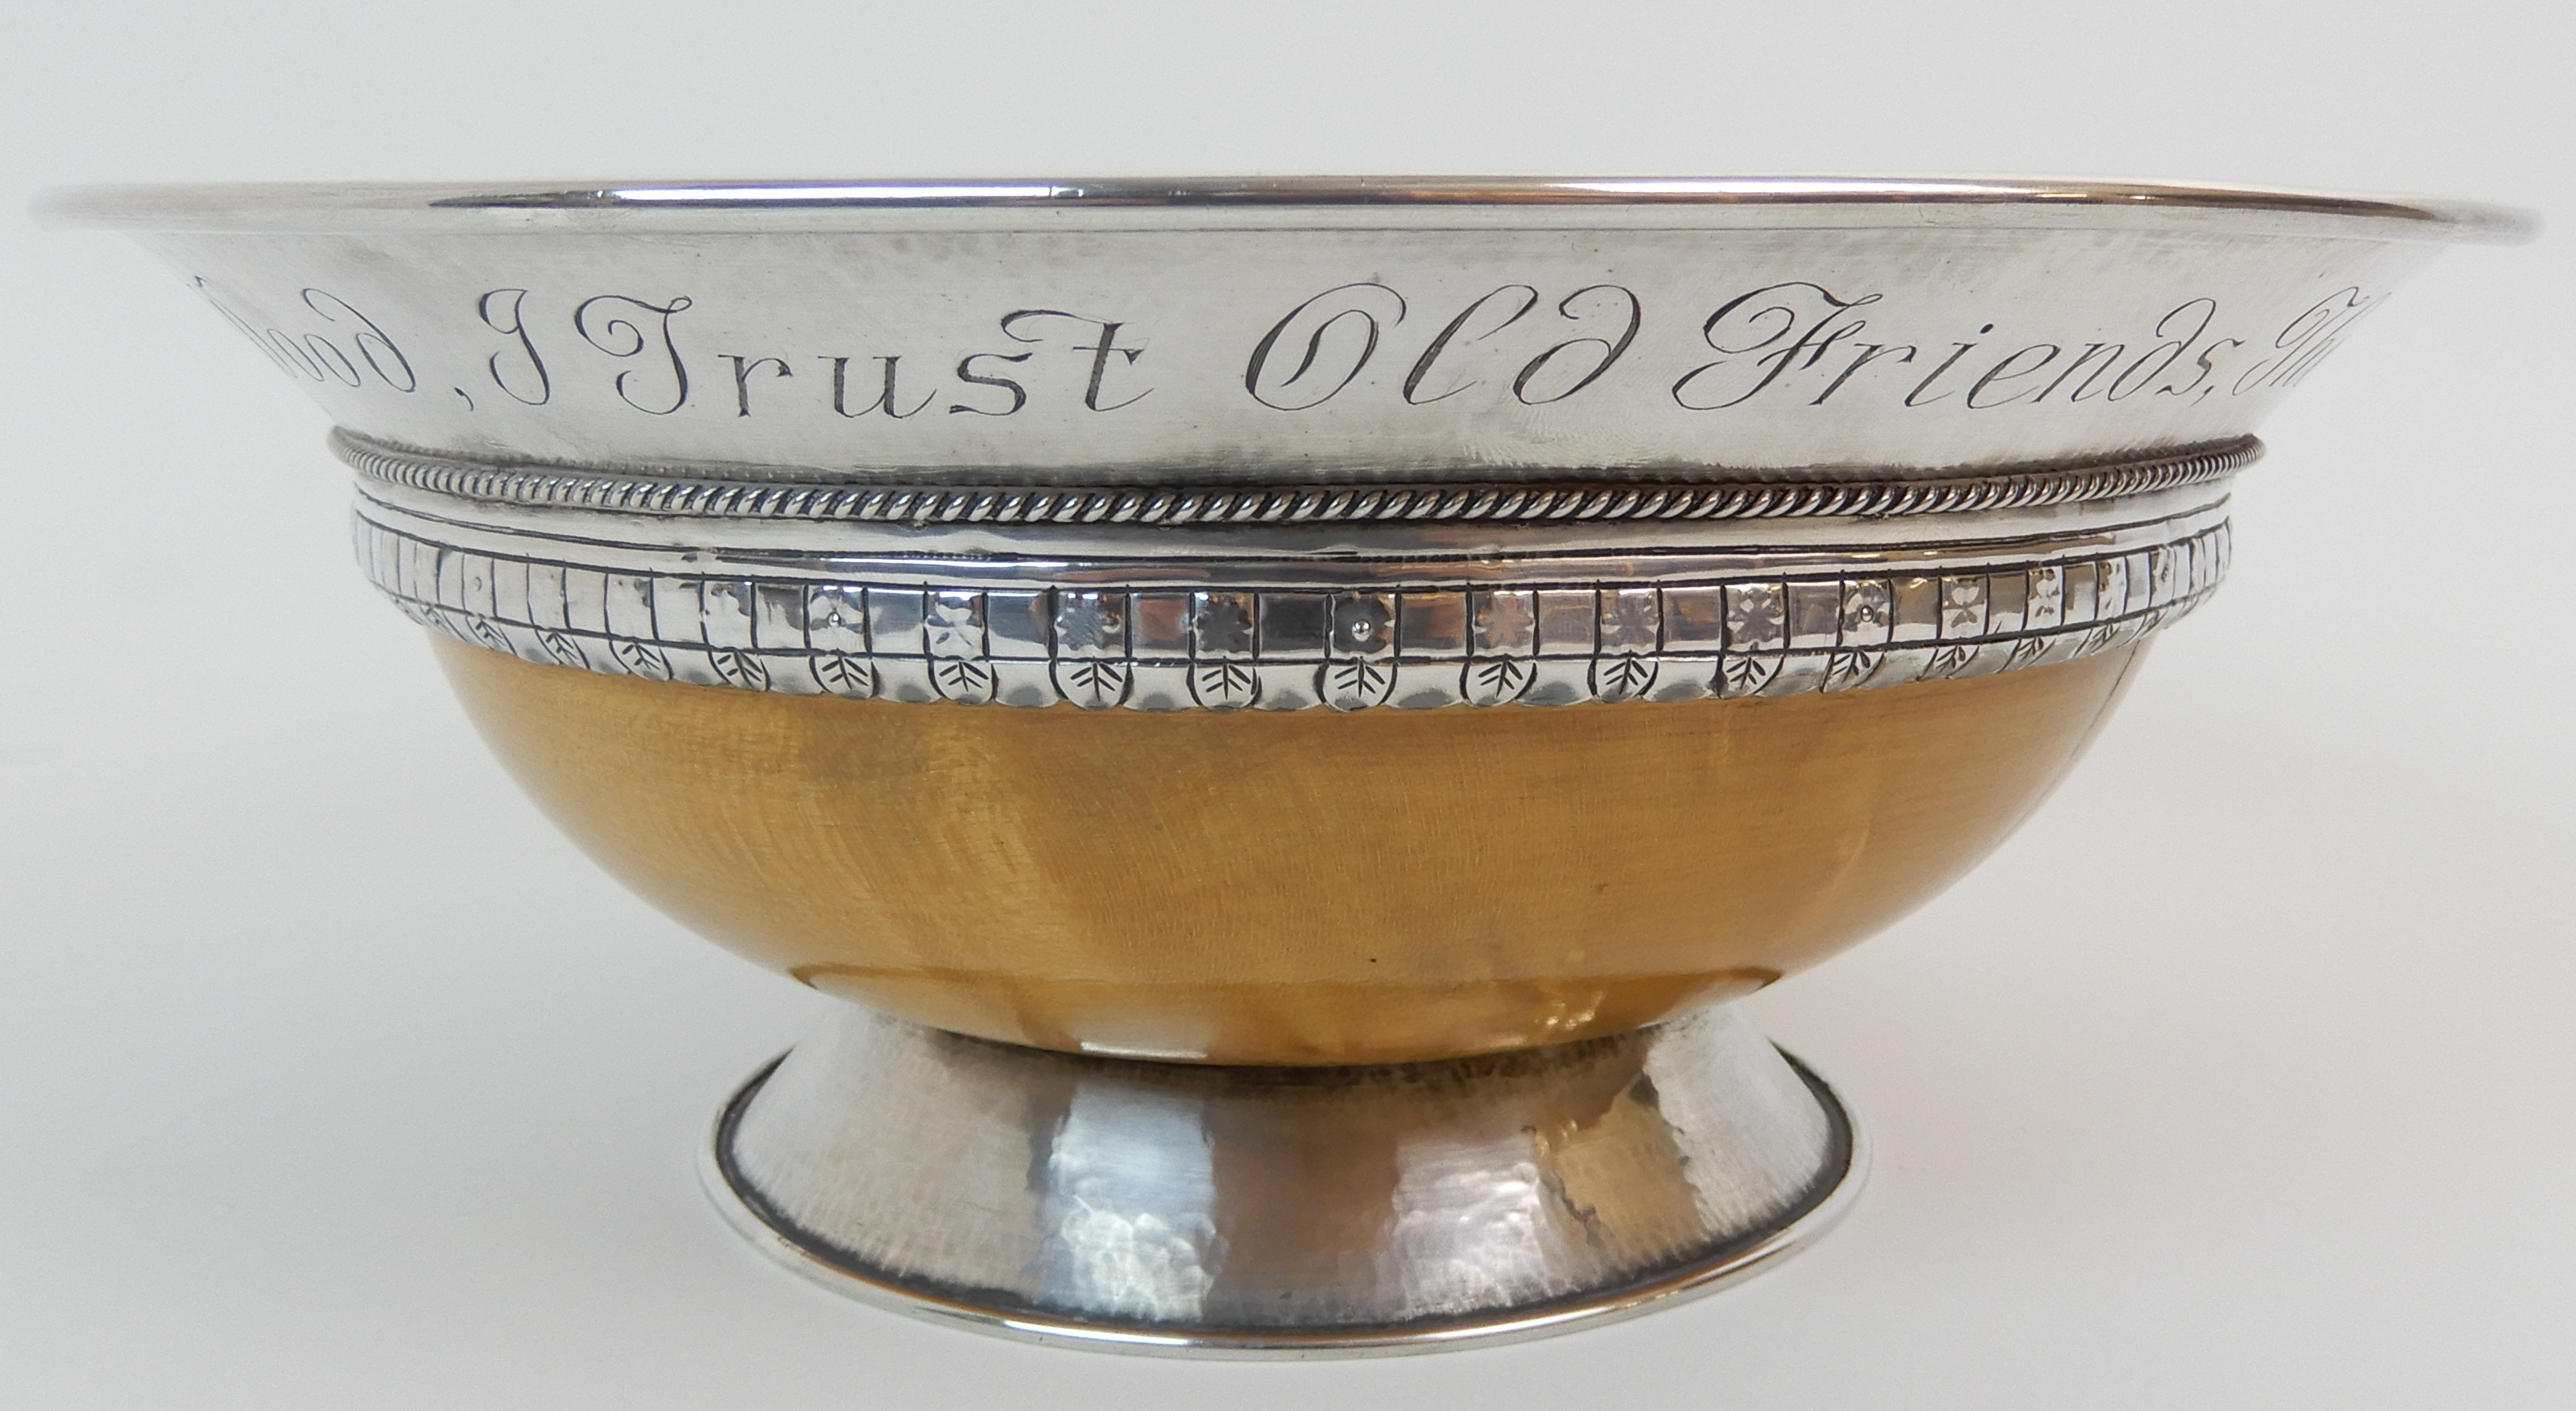 Lot 142 - AN ARTS AND CRAFTS SILVER MOUNTED TREEN BOWL by Elizabeth Henry Kirkwood, Edinburgh 1947, or